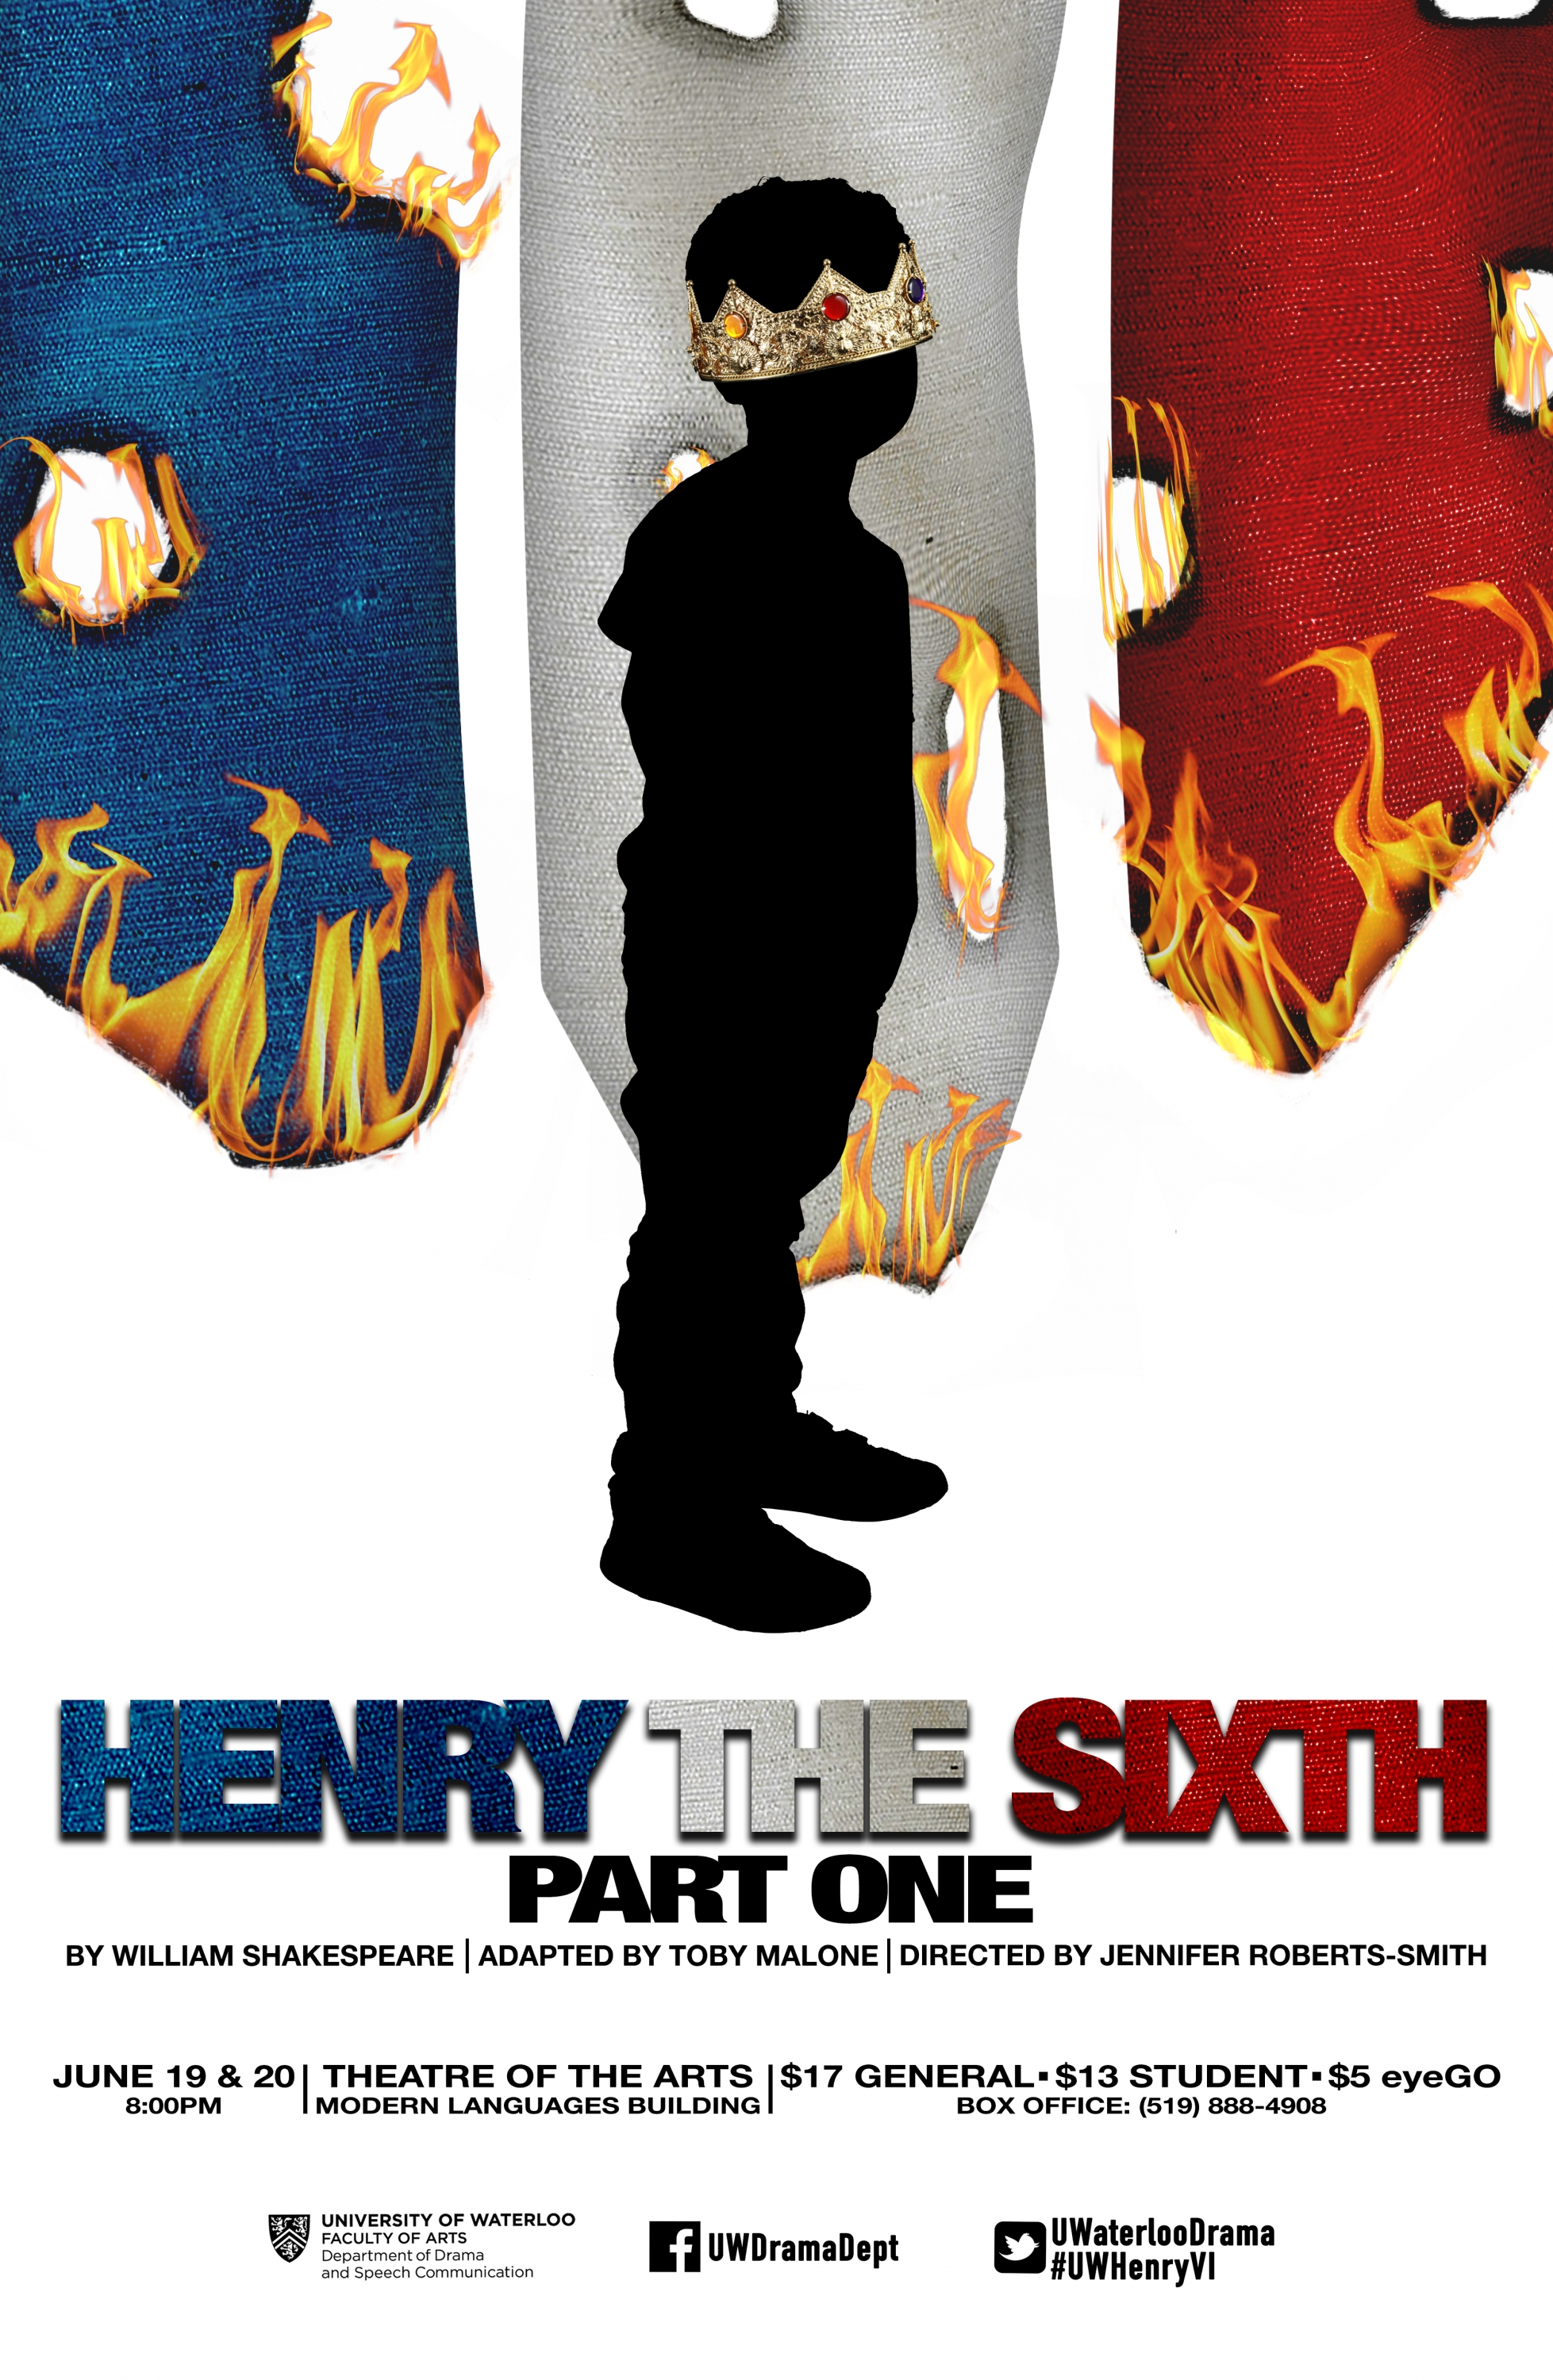 Poster image for Henry the Sixth production